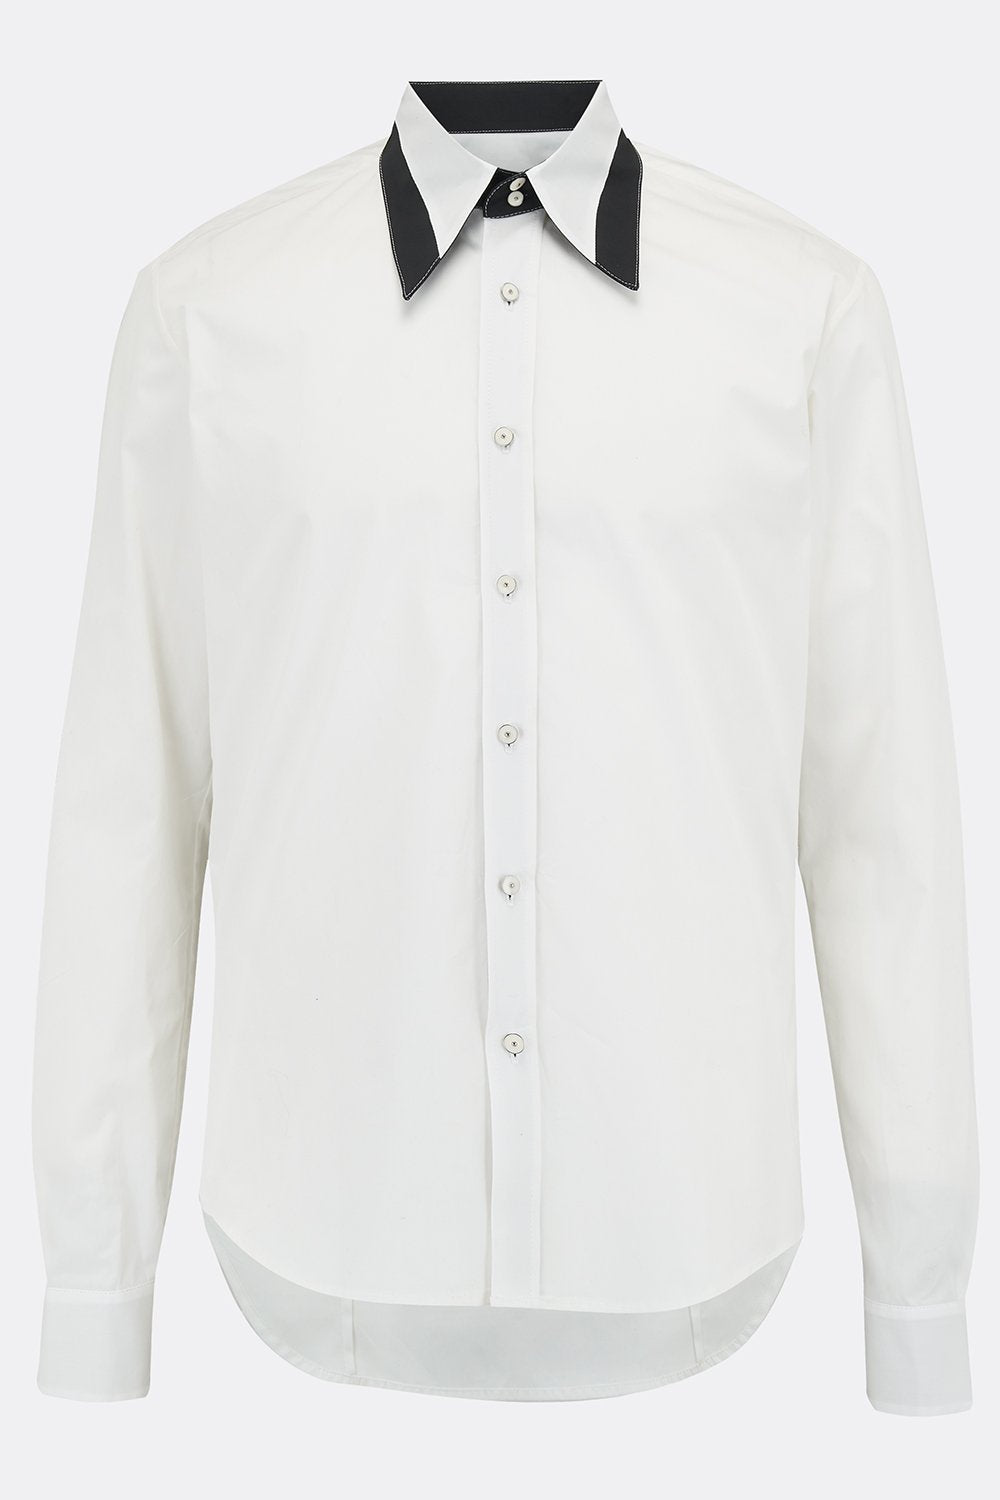 FLOYD SHIRT IN WHITE-menswear-A Child Of The Jago